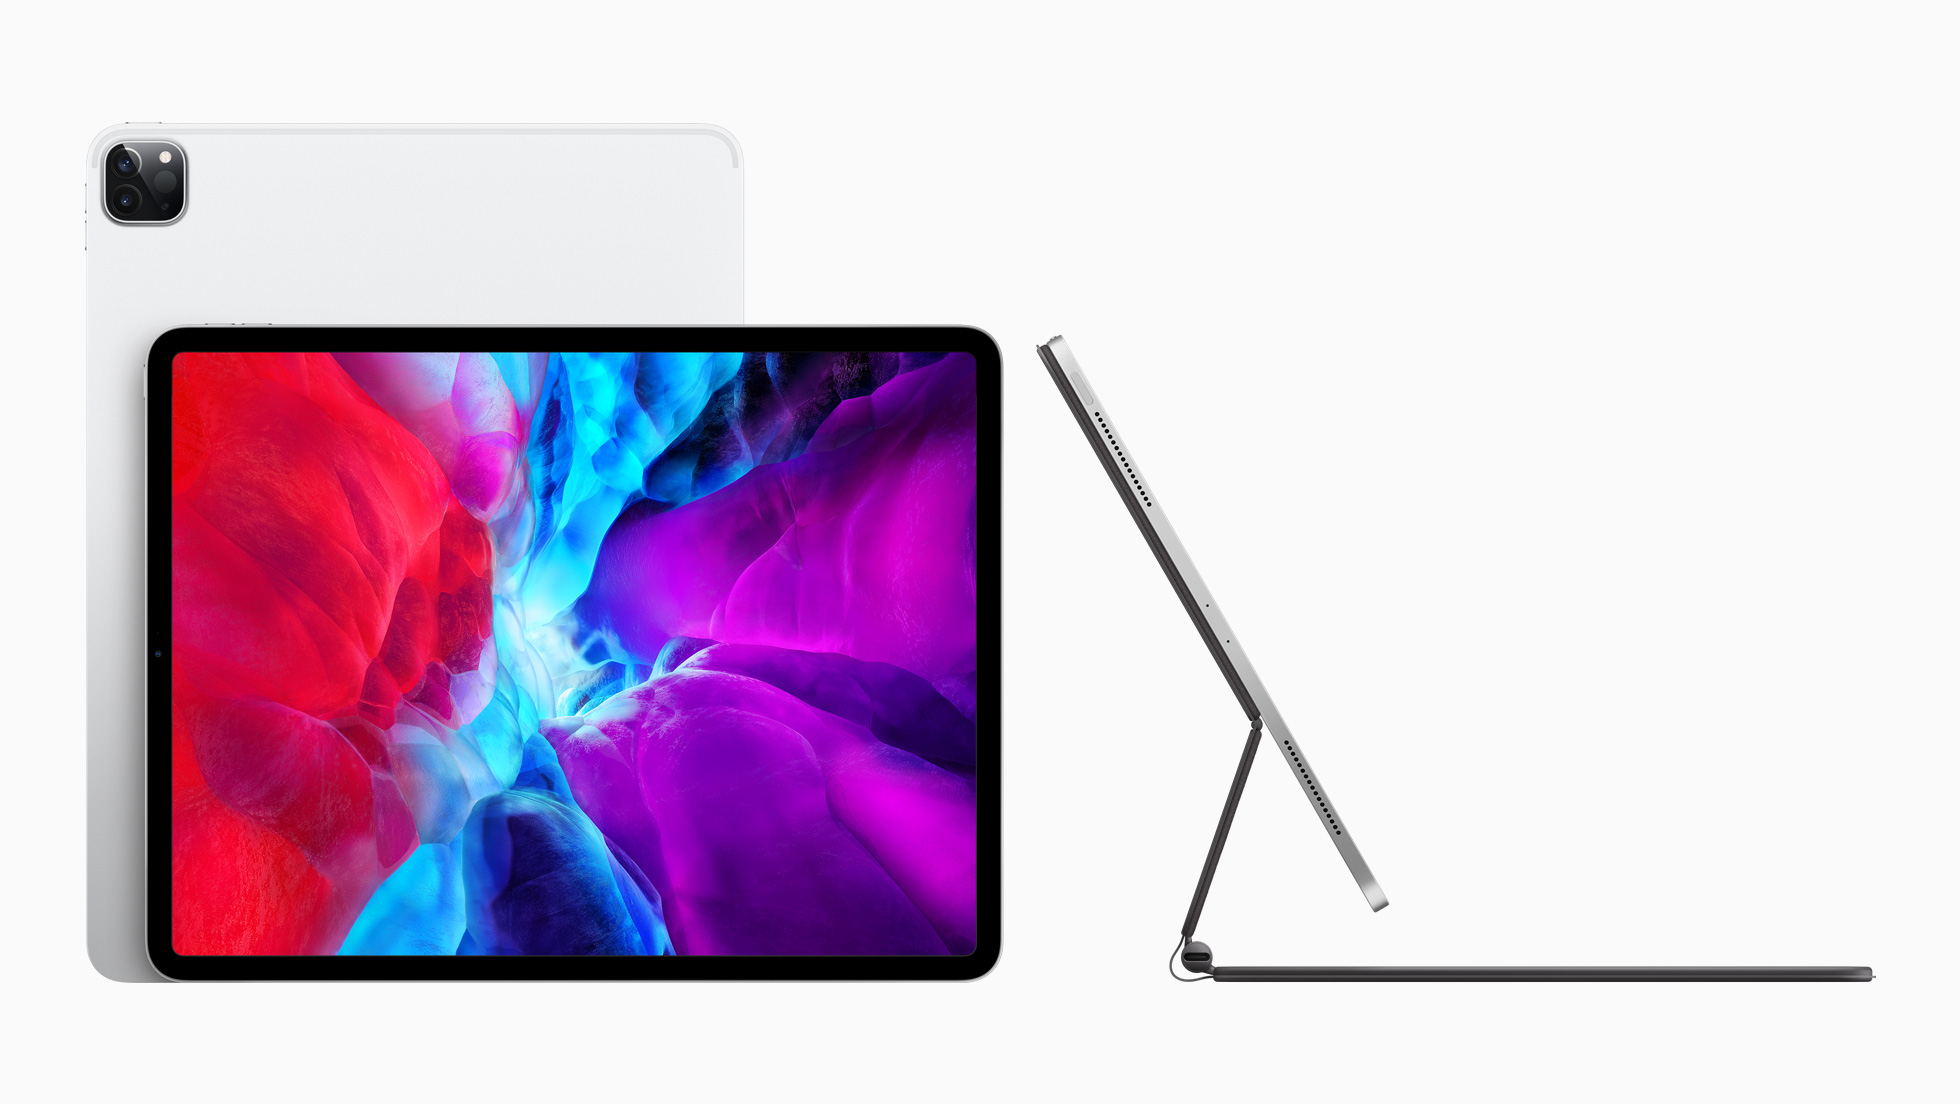 Apple announced its new iPad Pro on Wednesday.